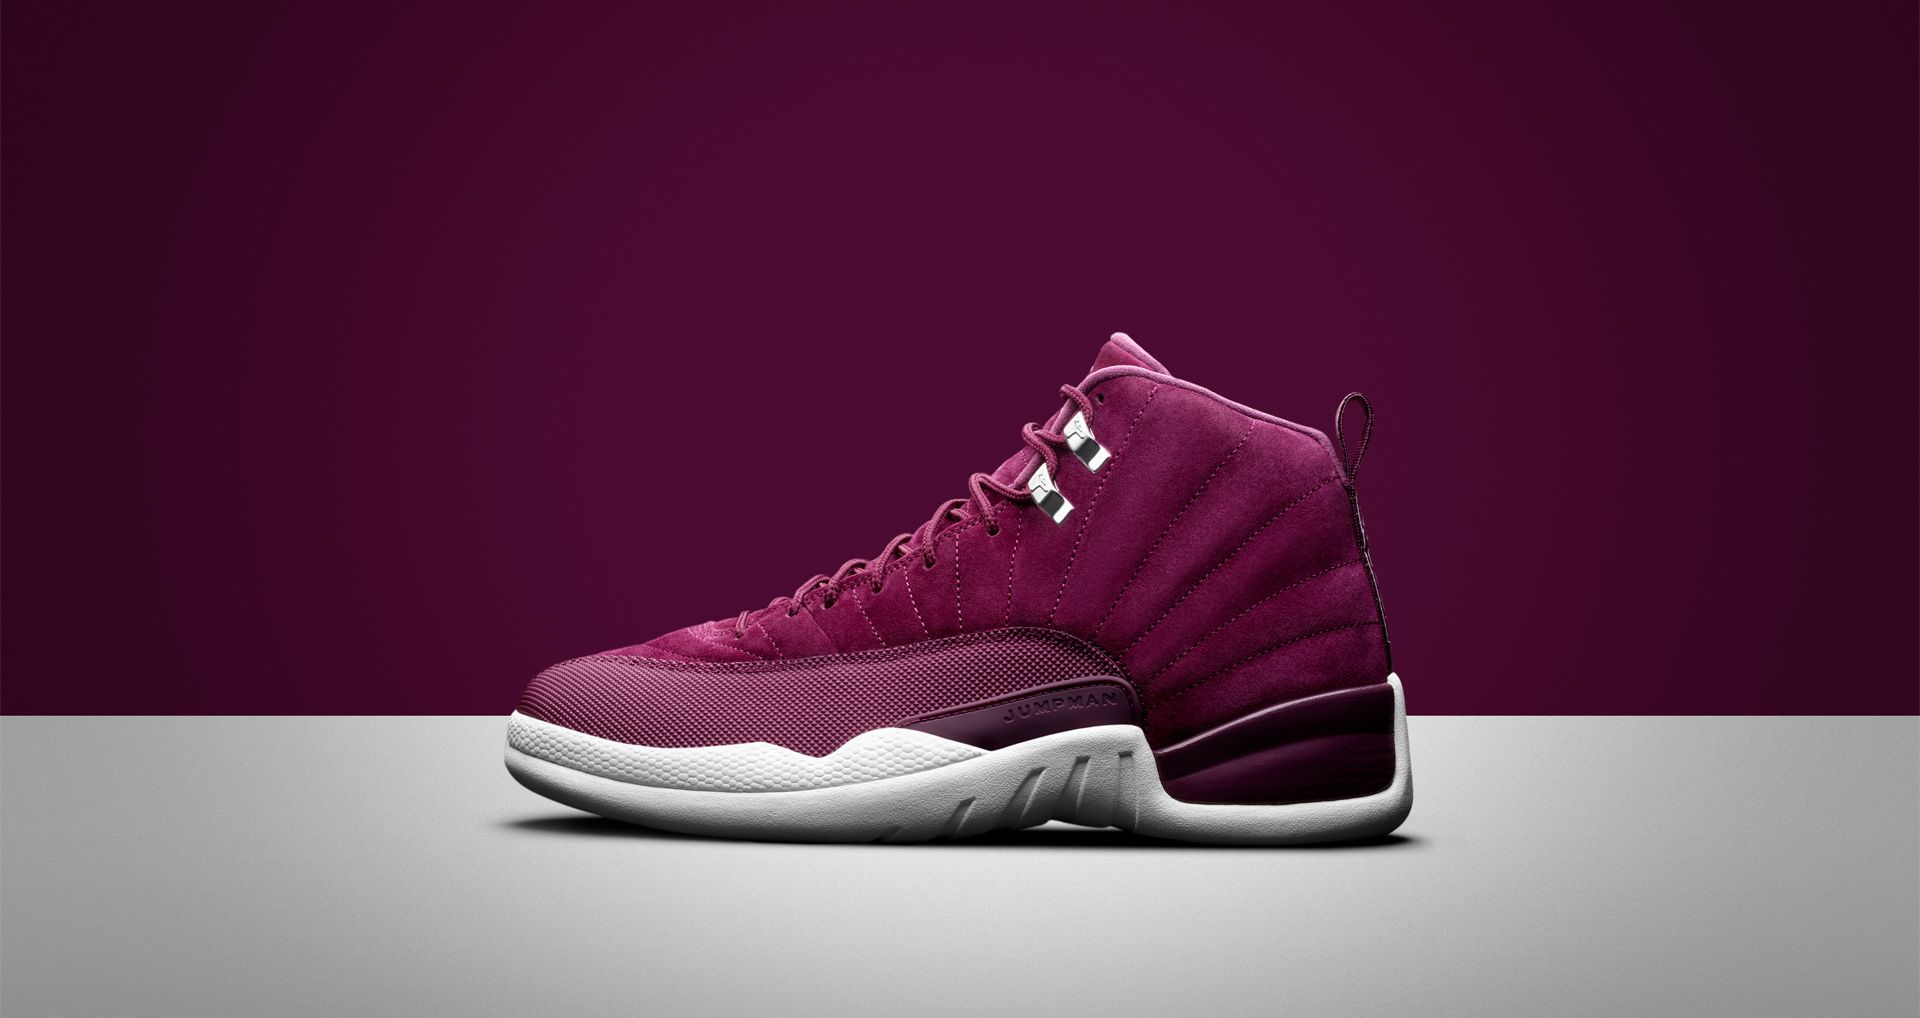 timeless design 955f1 dbaaf Air Jordan 12 Retro  Bordeaux  Release Date